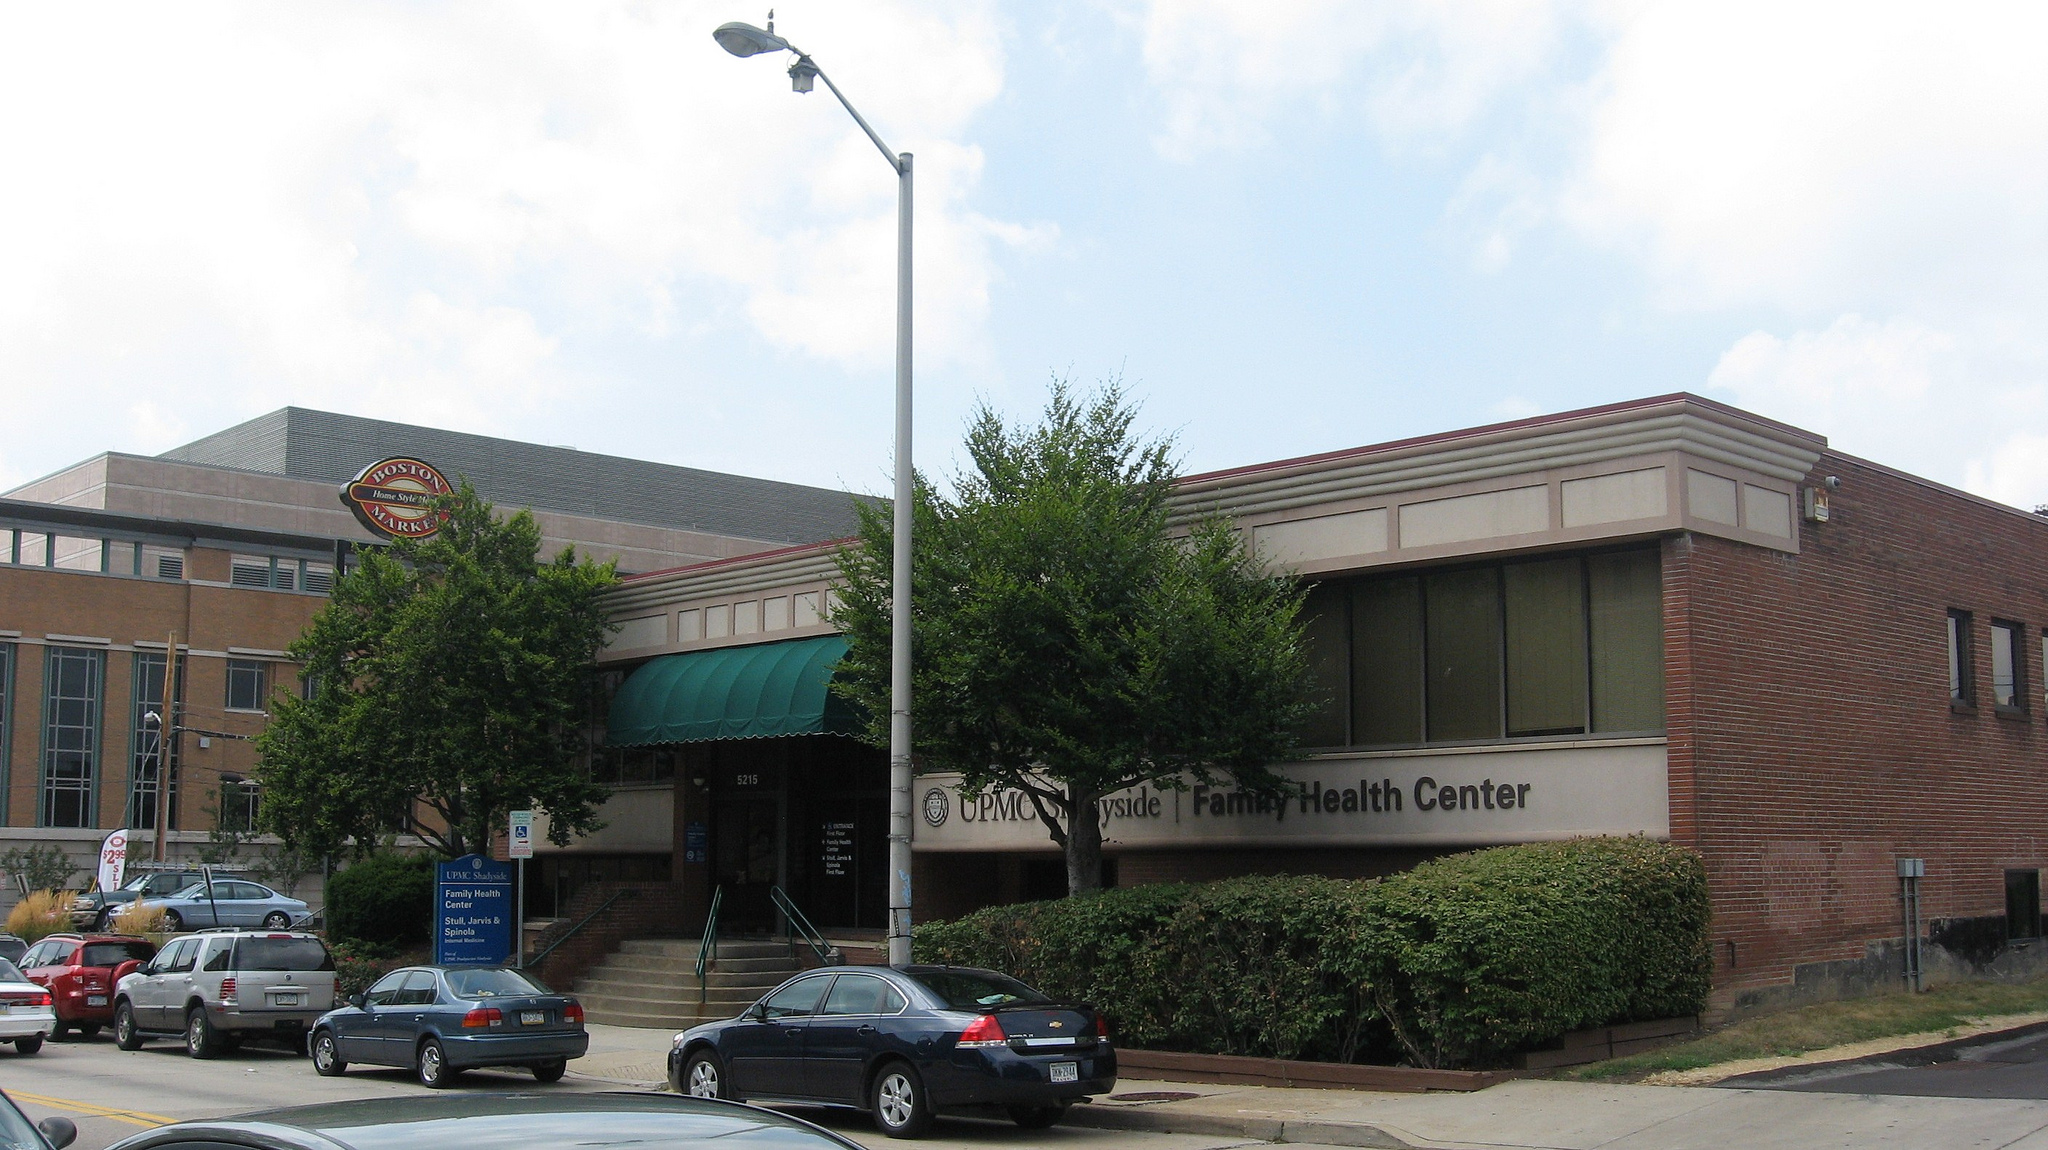 http://upload.wikimedia.org/wikipedia/commons/0/01/UPMC_Shadyside_Family_Health_Center.jpg